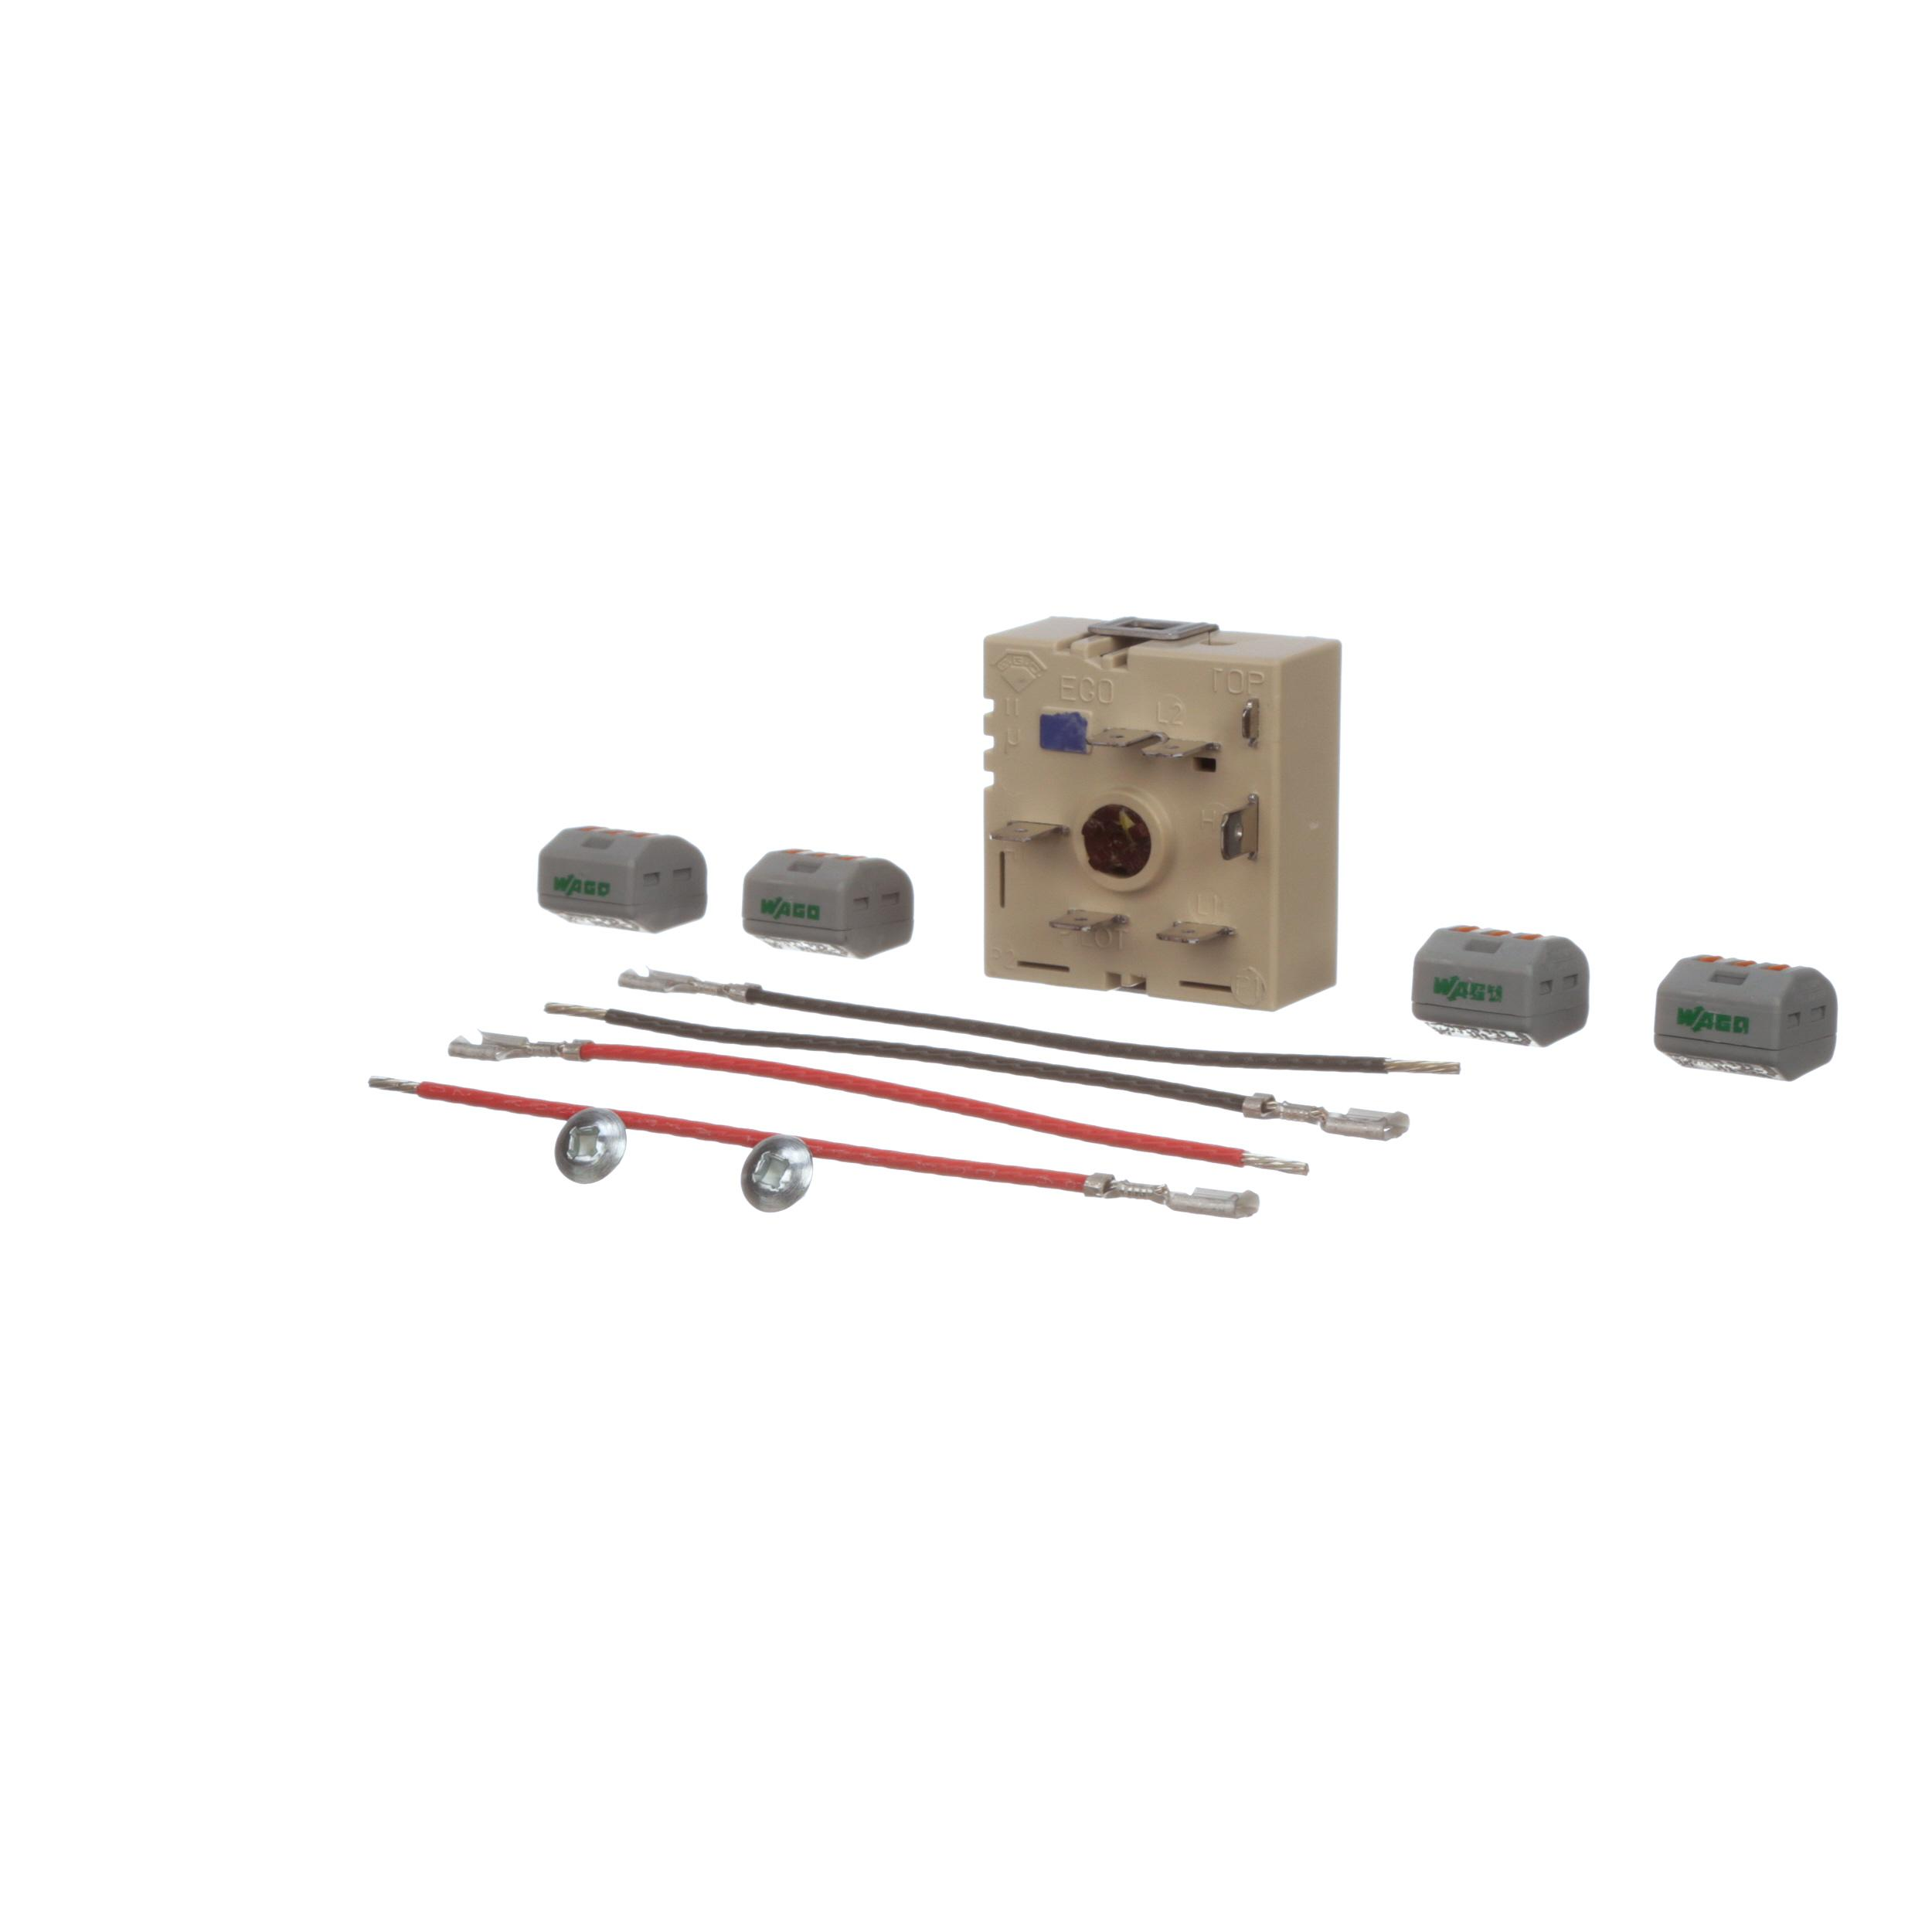 GARLAND INFINITE SWITCH-240 VOLT KIT